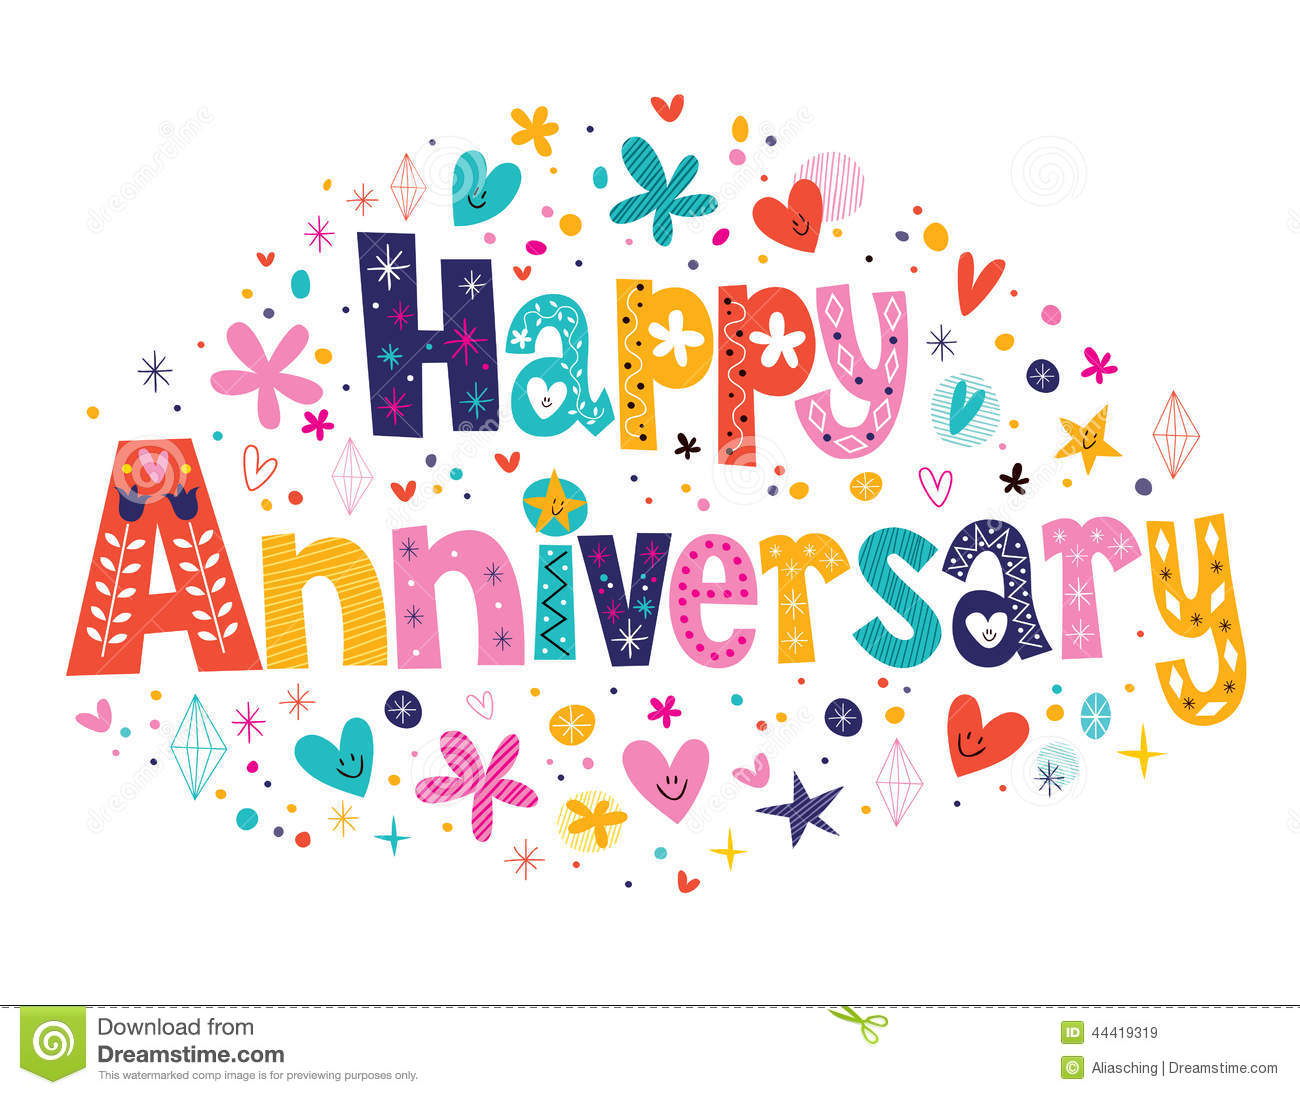 Work anniversary free clipart picture library 21+ Anniversary Clip Art Free | ClipartLook picture library